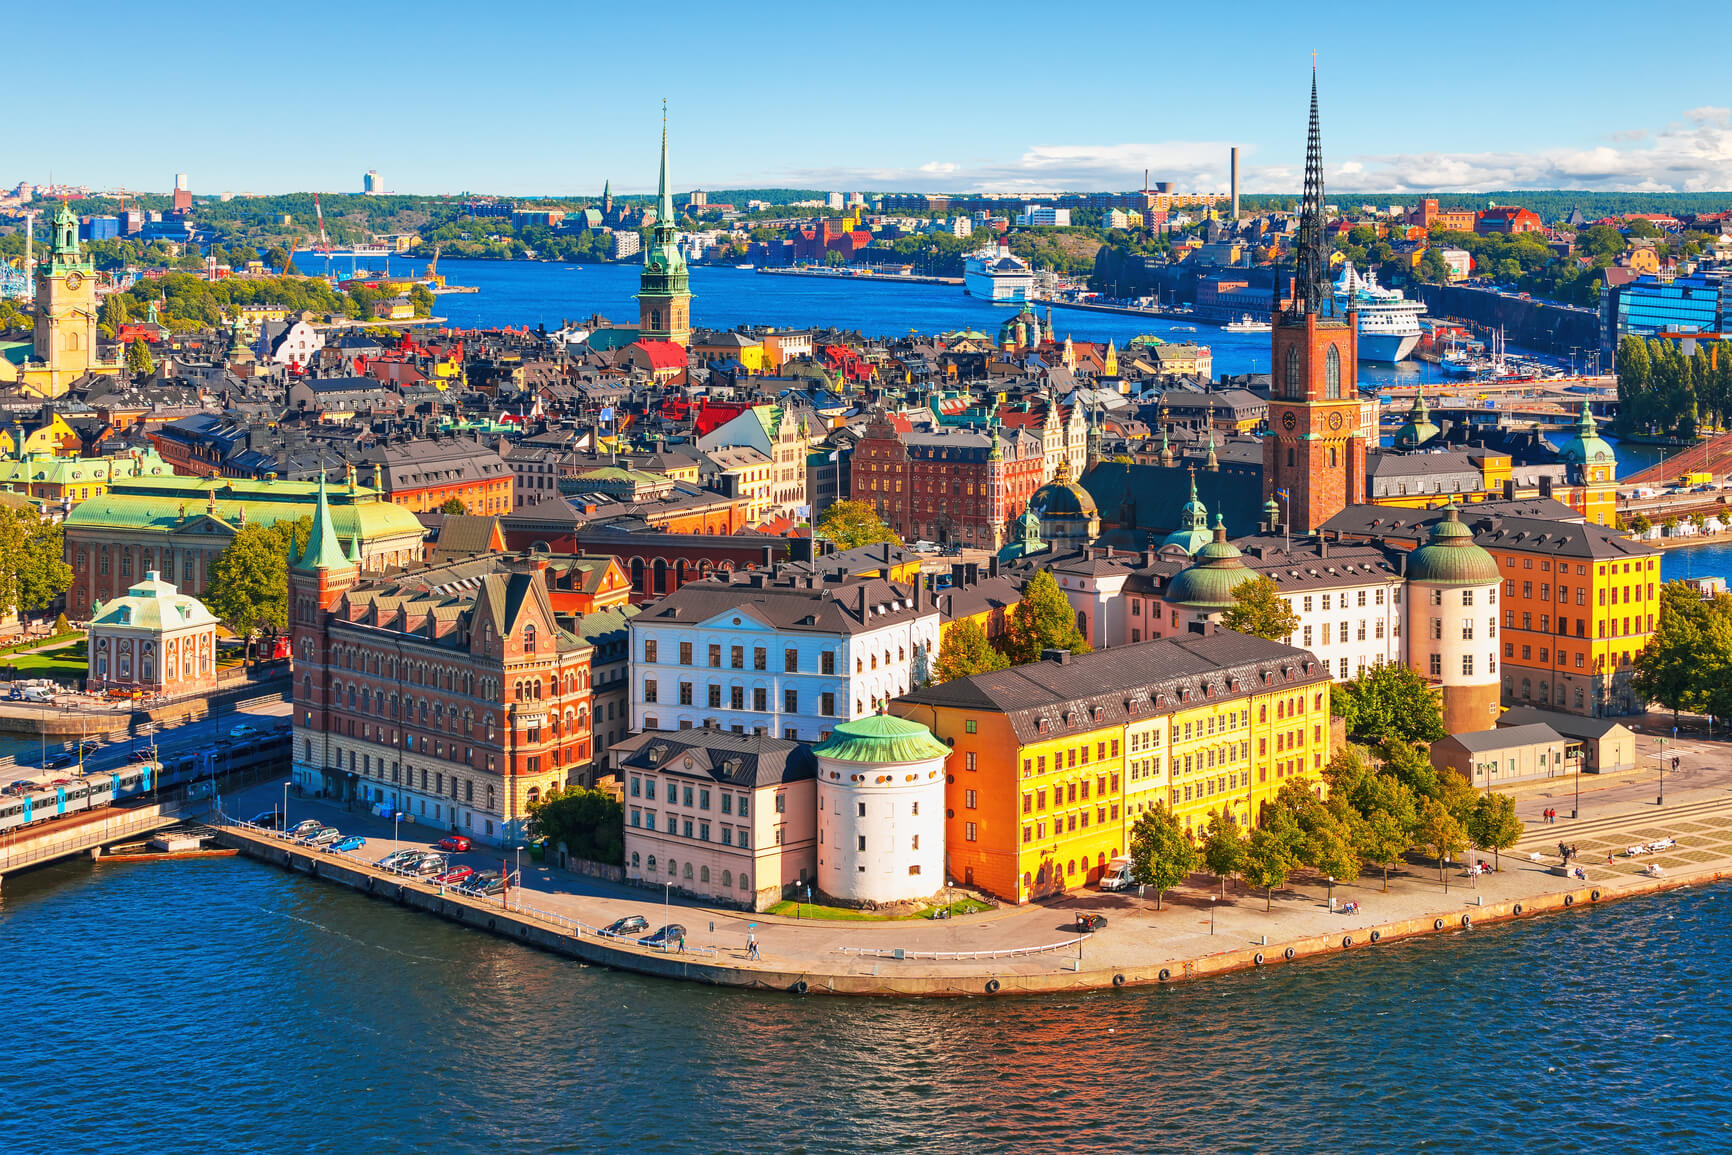 Los Angeles to Stockholm, Sweden for only $355 roundtrip